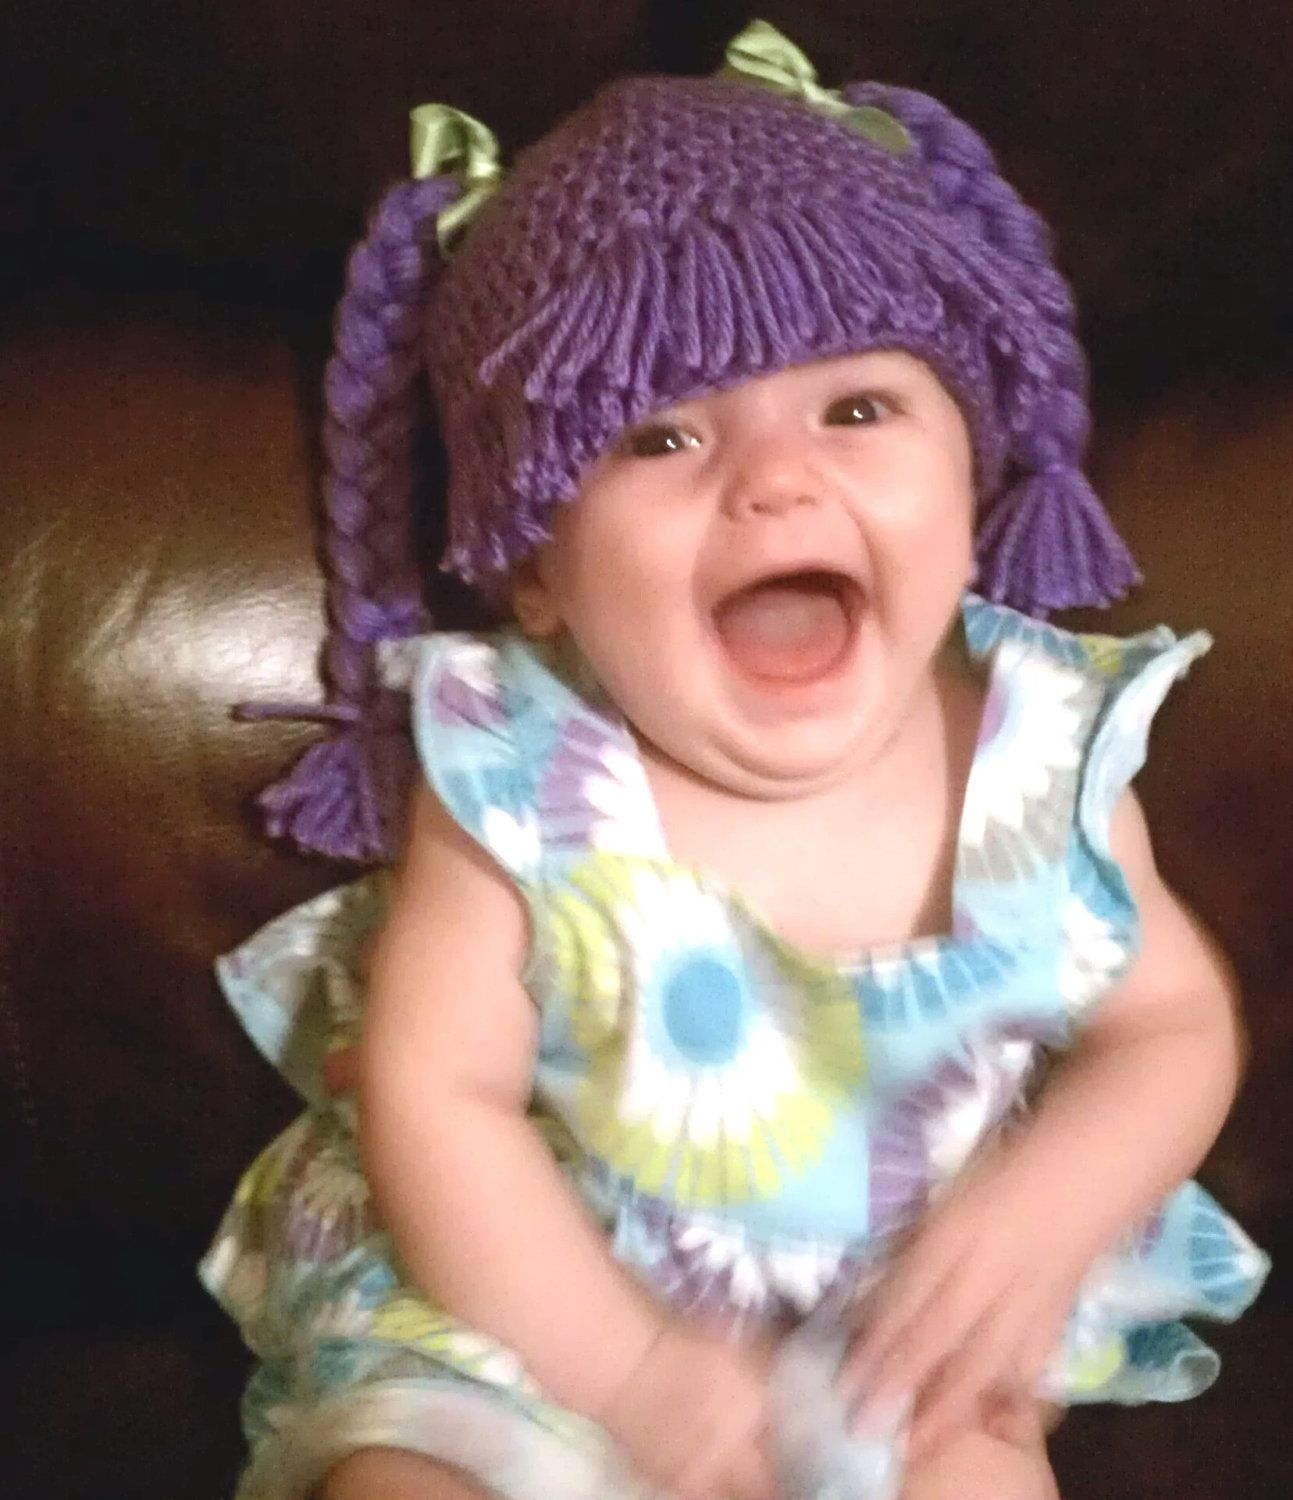 Baby girl adorable Cabbage Patch crocheted hat complete with hair ...